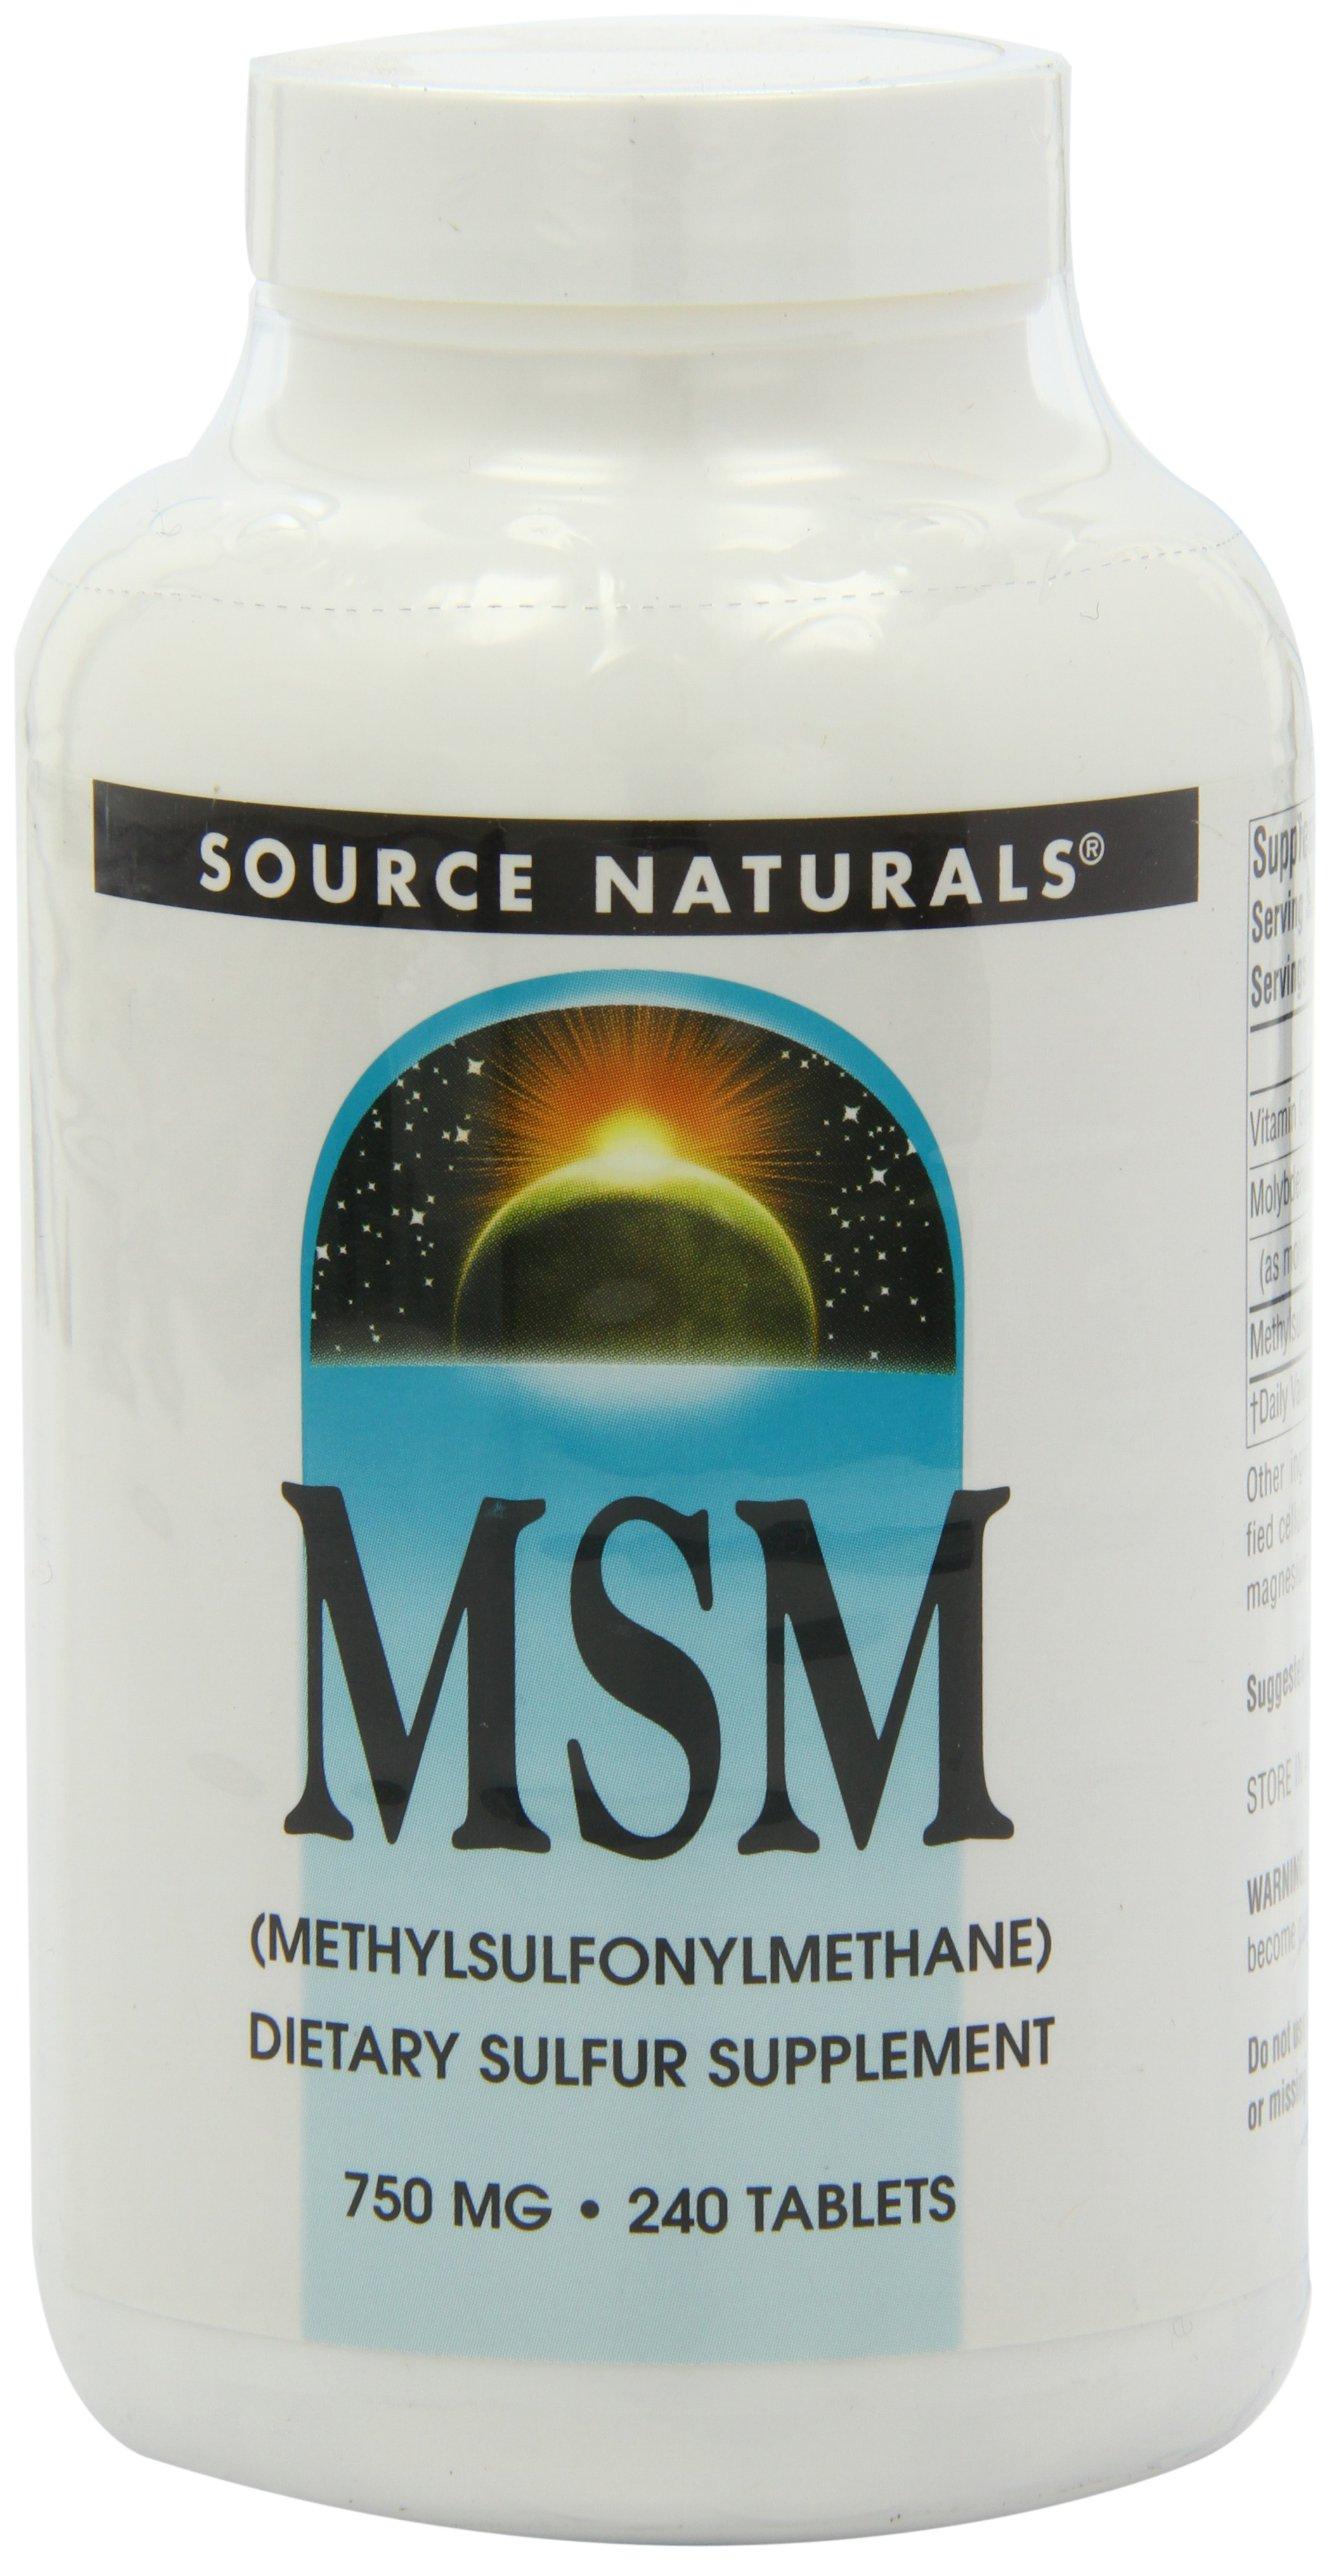 Source Naturals MSM (methylsulfonylmethane), 750mg, 240 Tablets